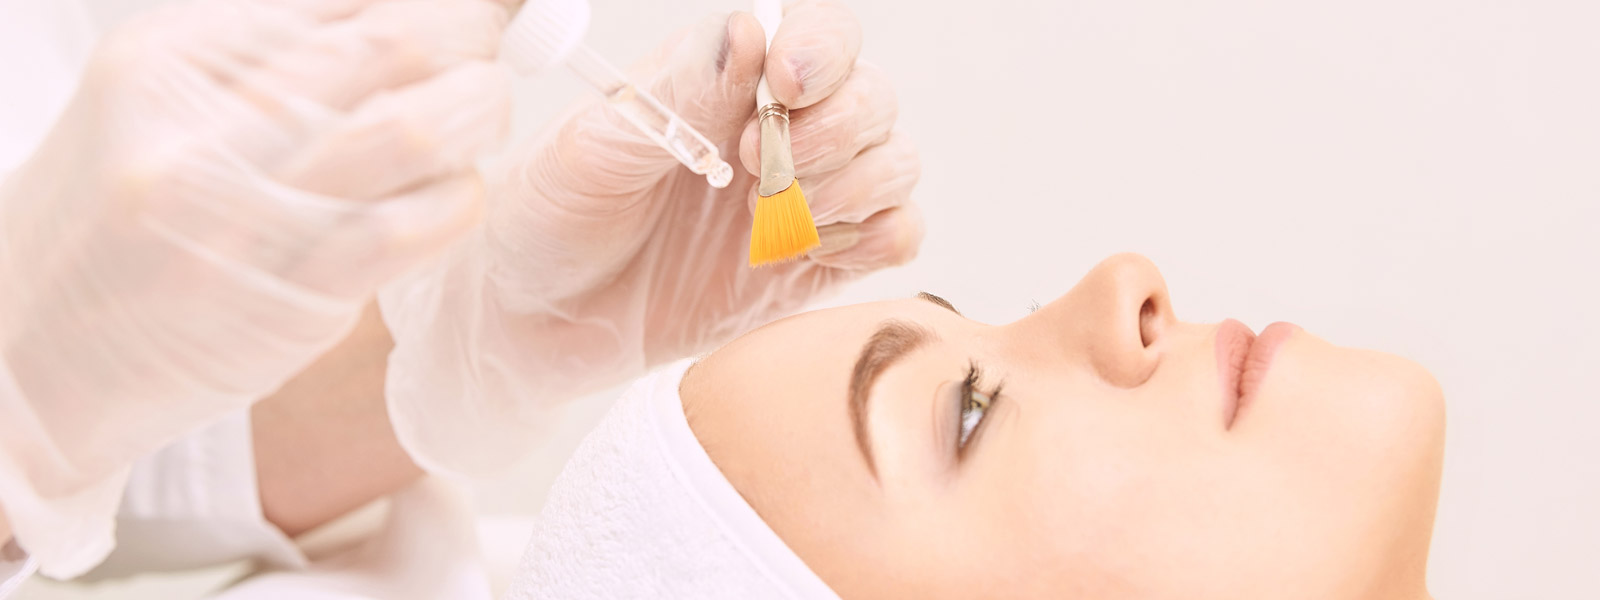 A Woman Getting Done Chemical Peels Treatment